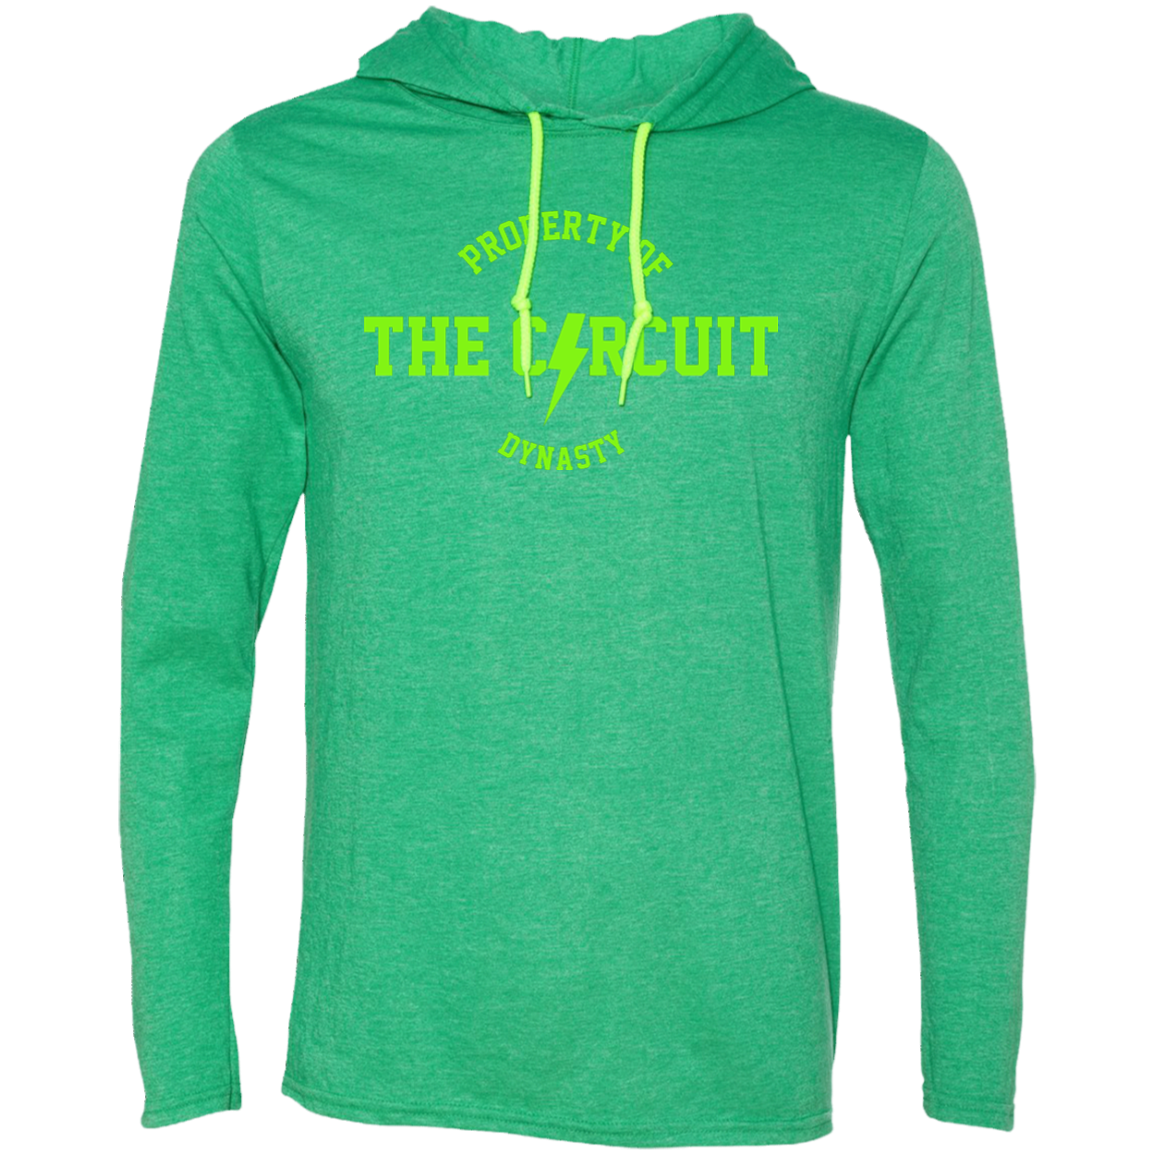 Property of the Circuit Body Fit Hoodie - Neon Print